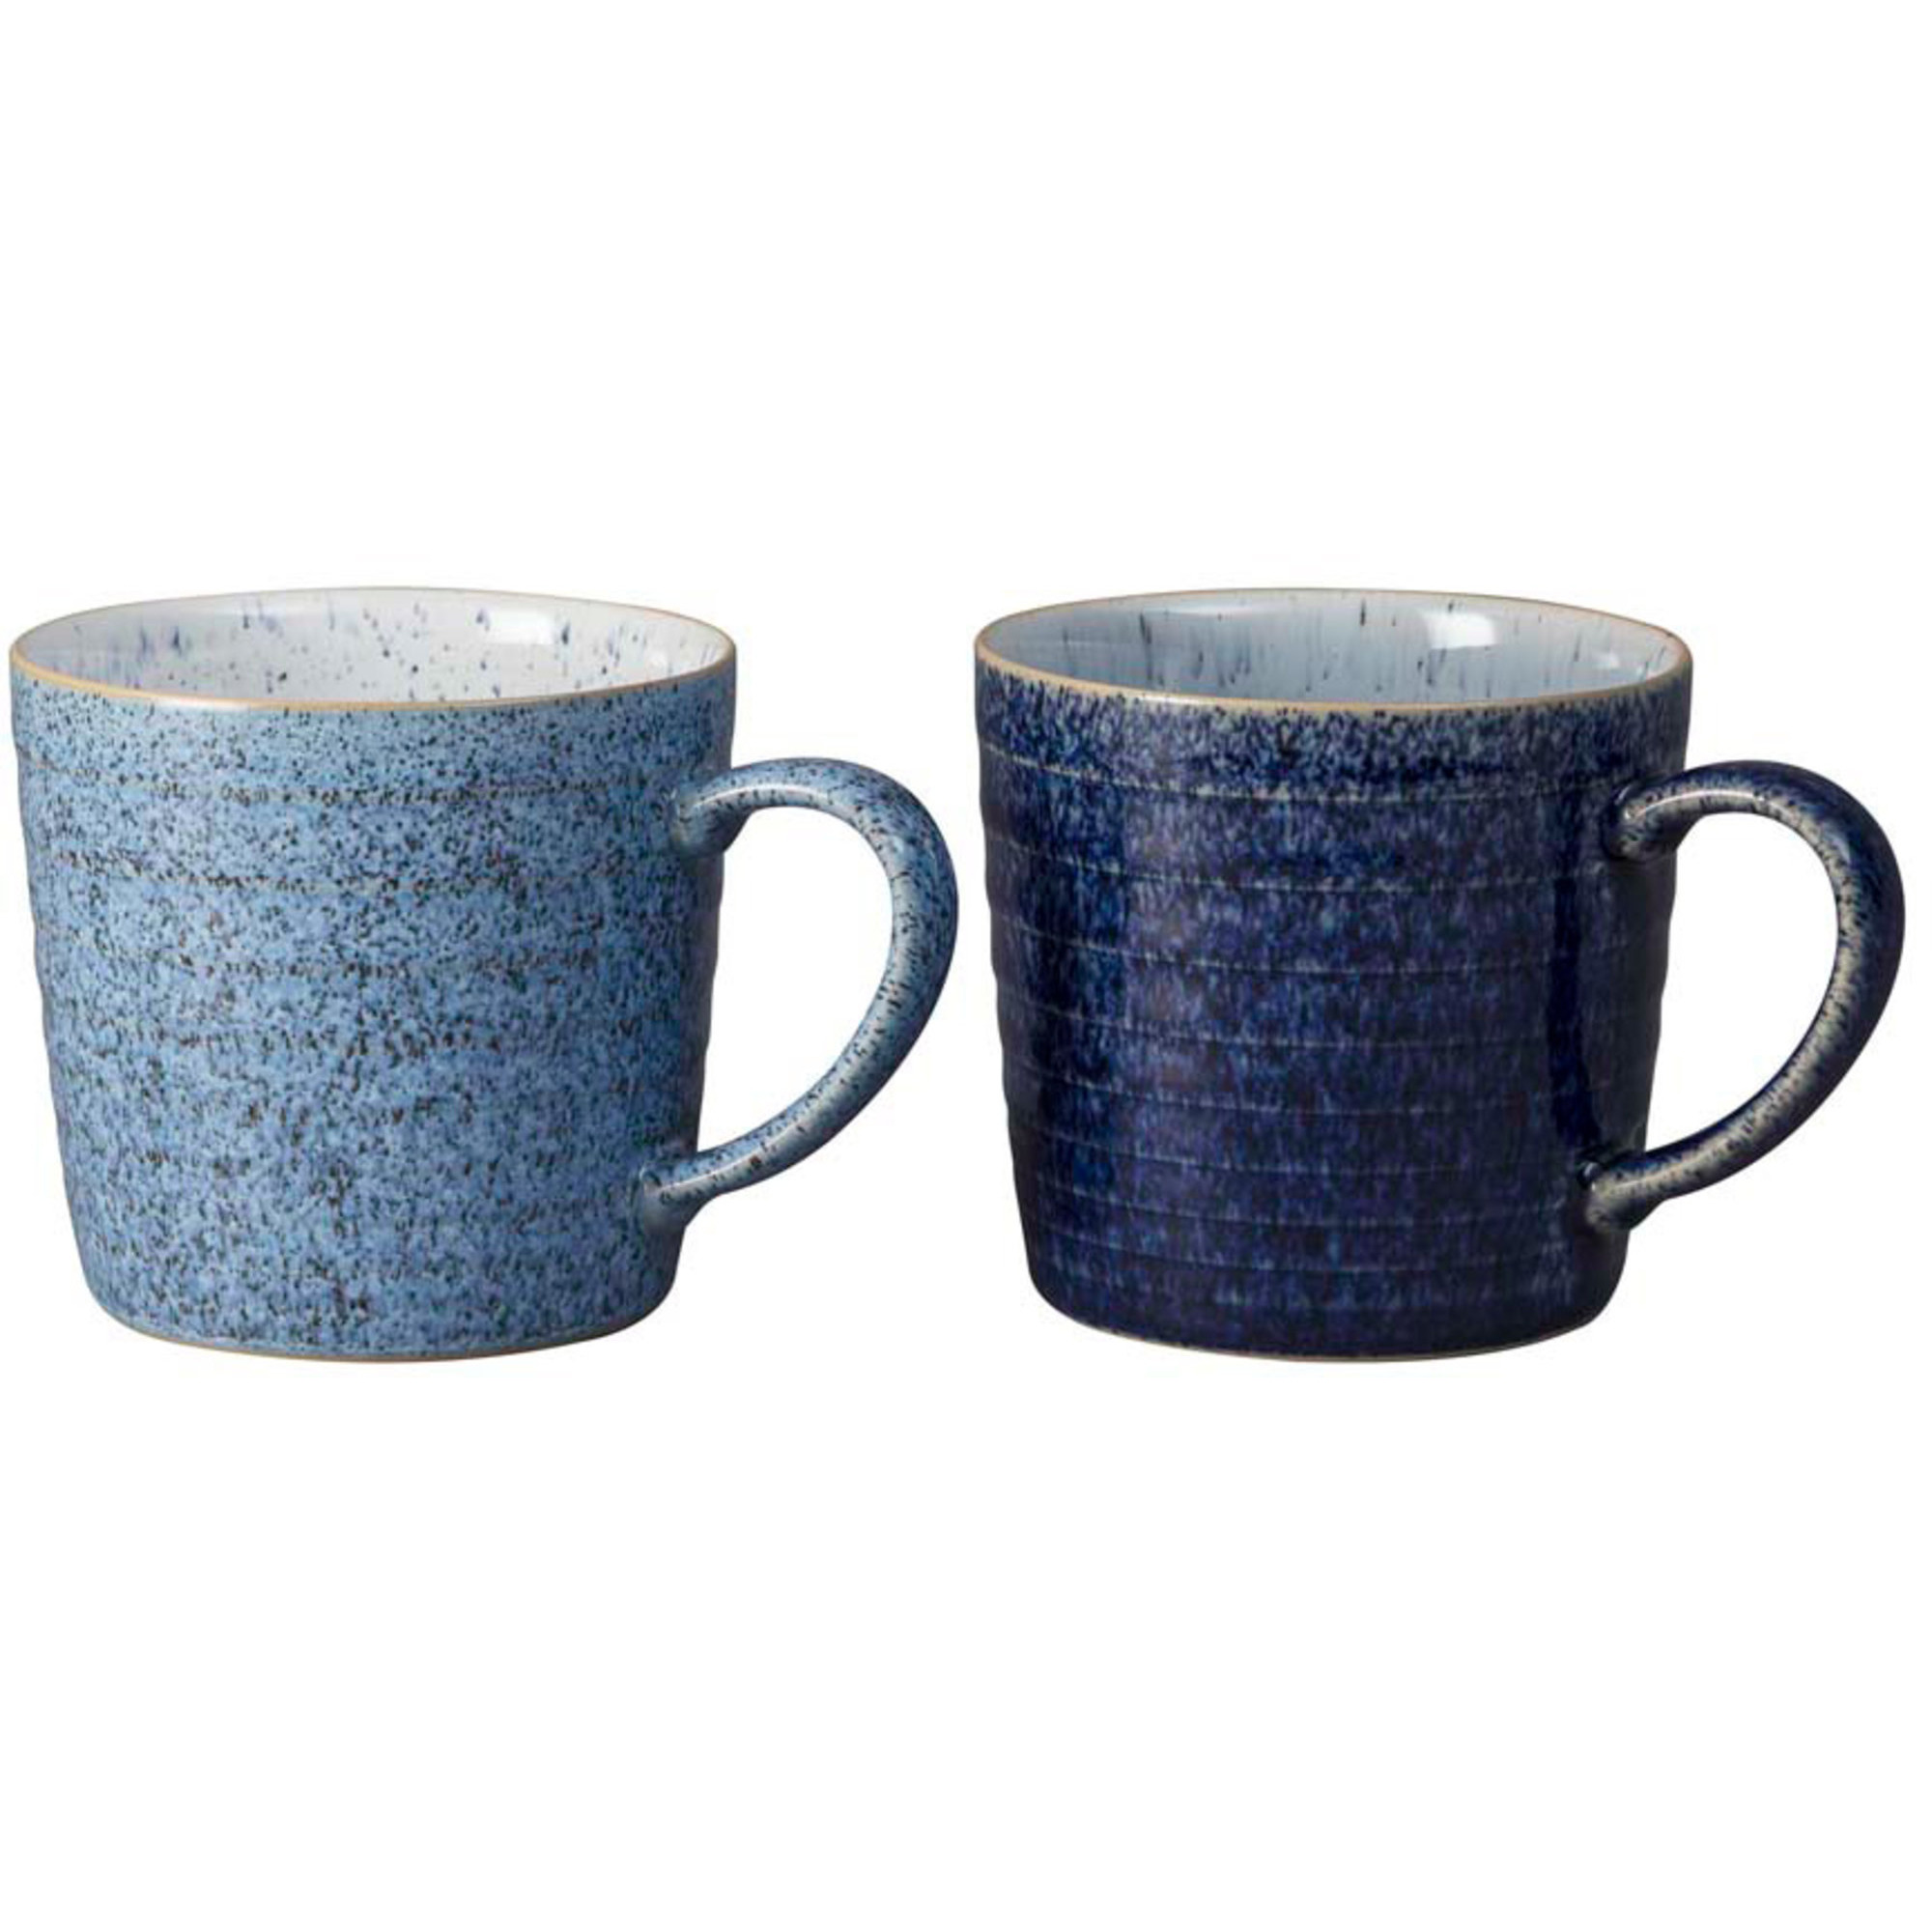 Denby Studio Blue Ridged Mugg 40 cl 2-Pack